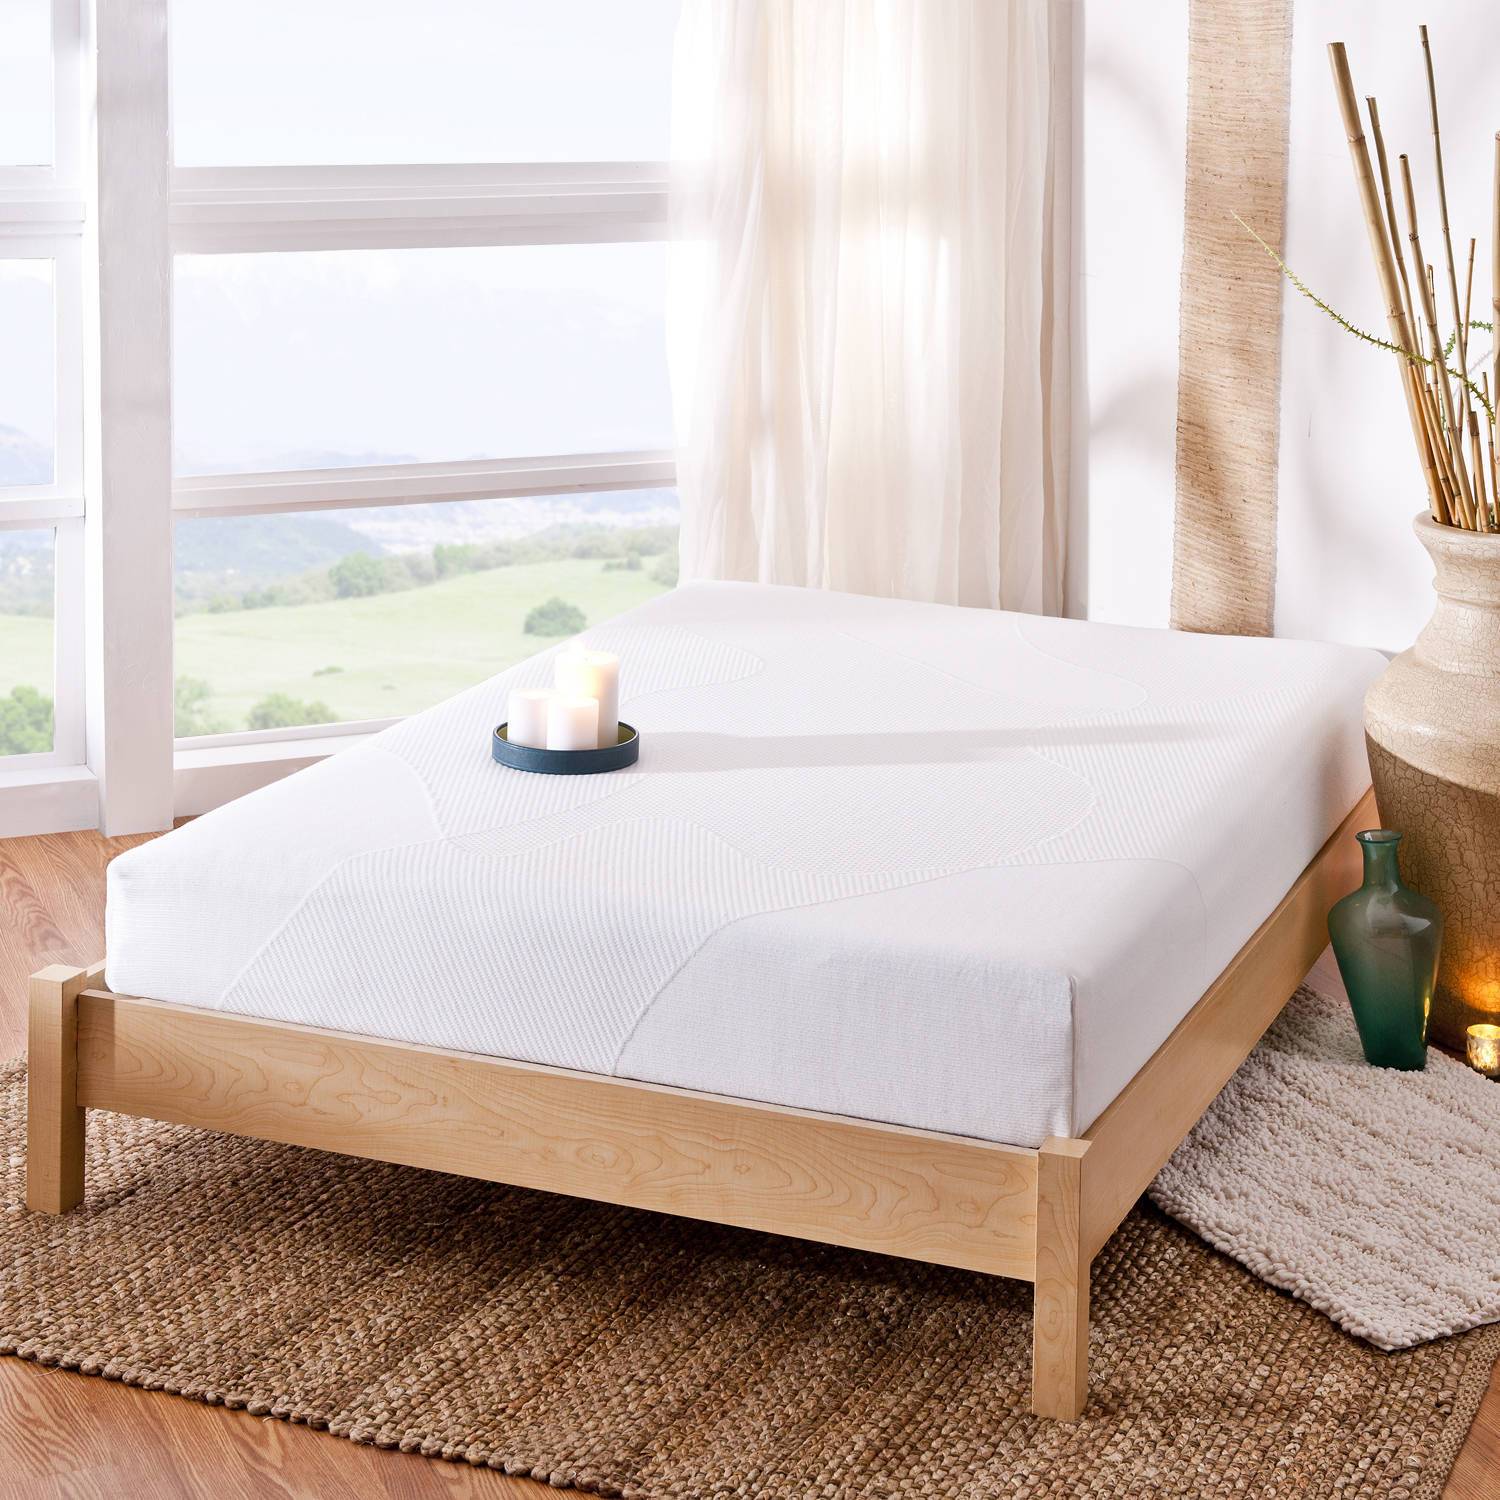 pedic click to bases prices product image item leon tempurpedic split change mattress reinforce king boxspring mattresses and accessories boxsprings canada s tempur